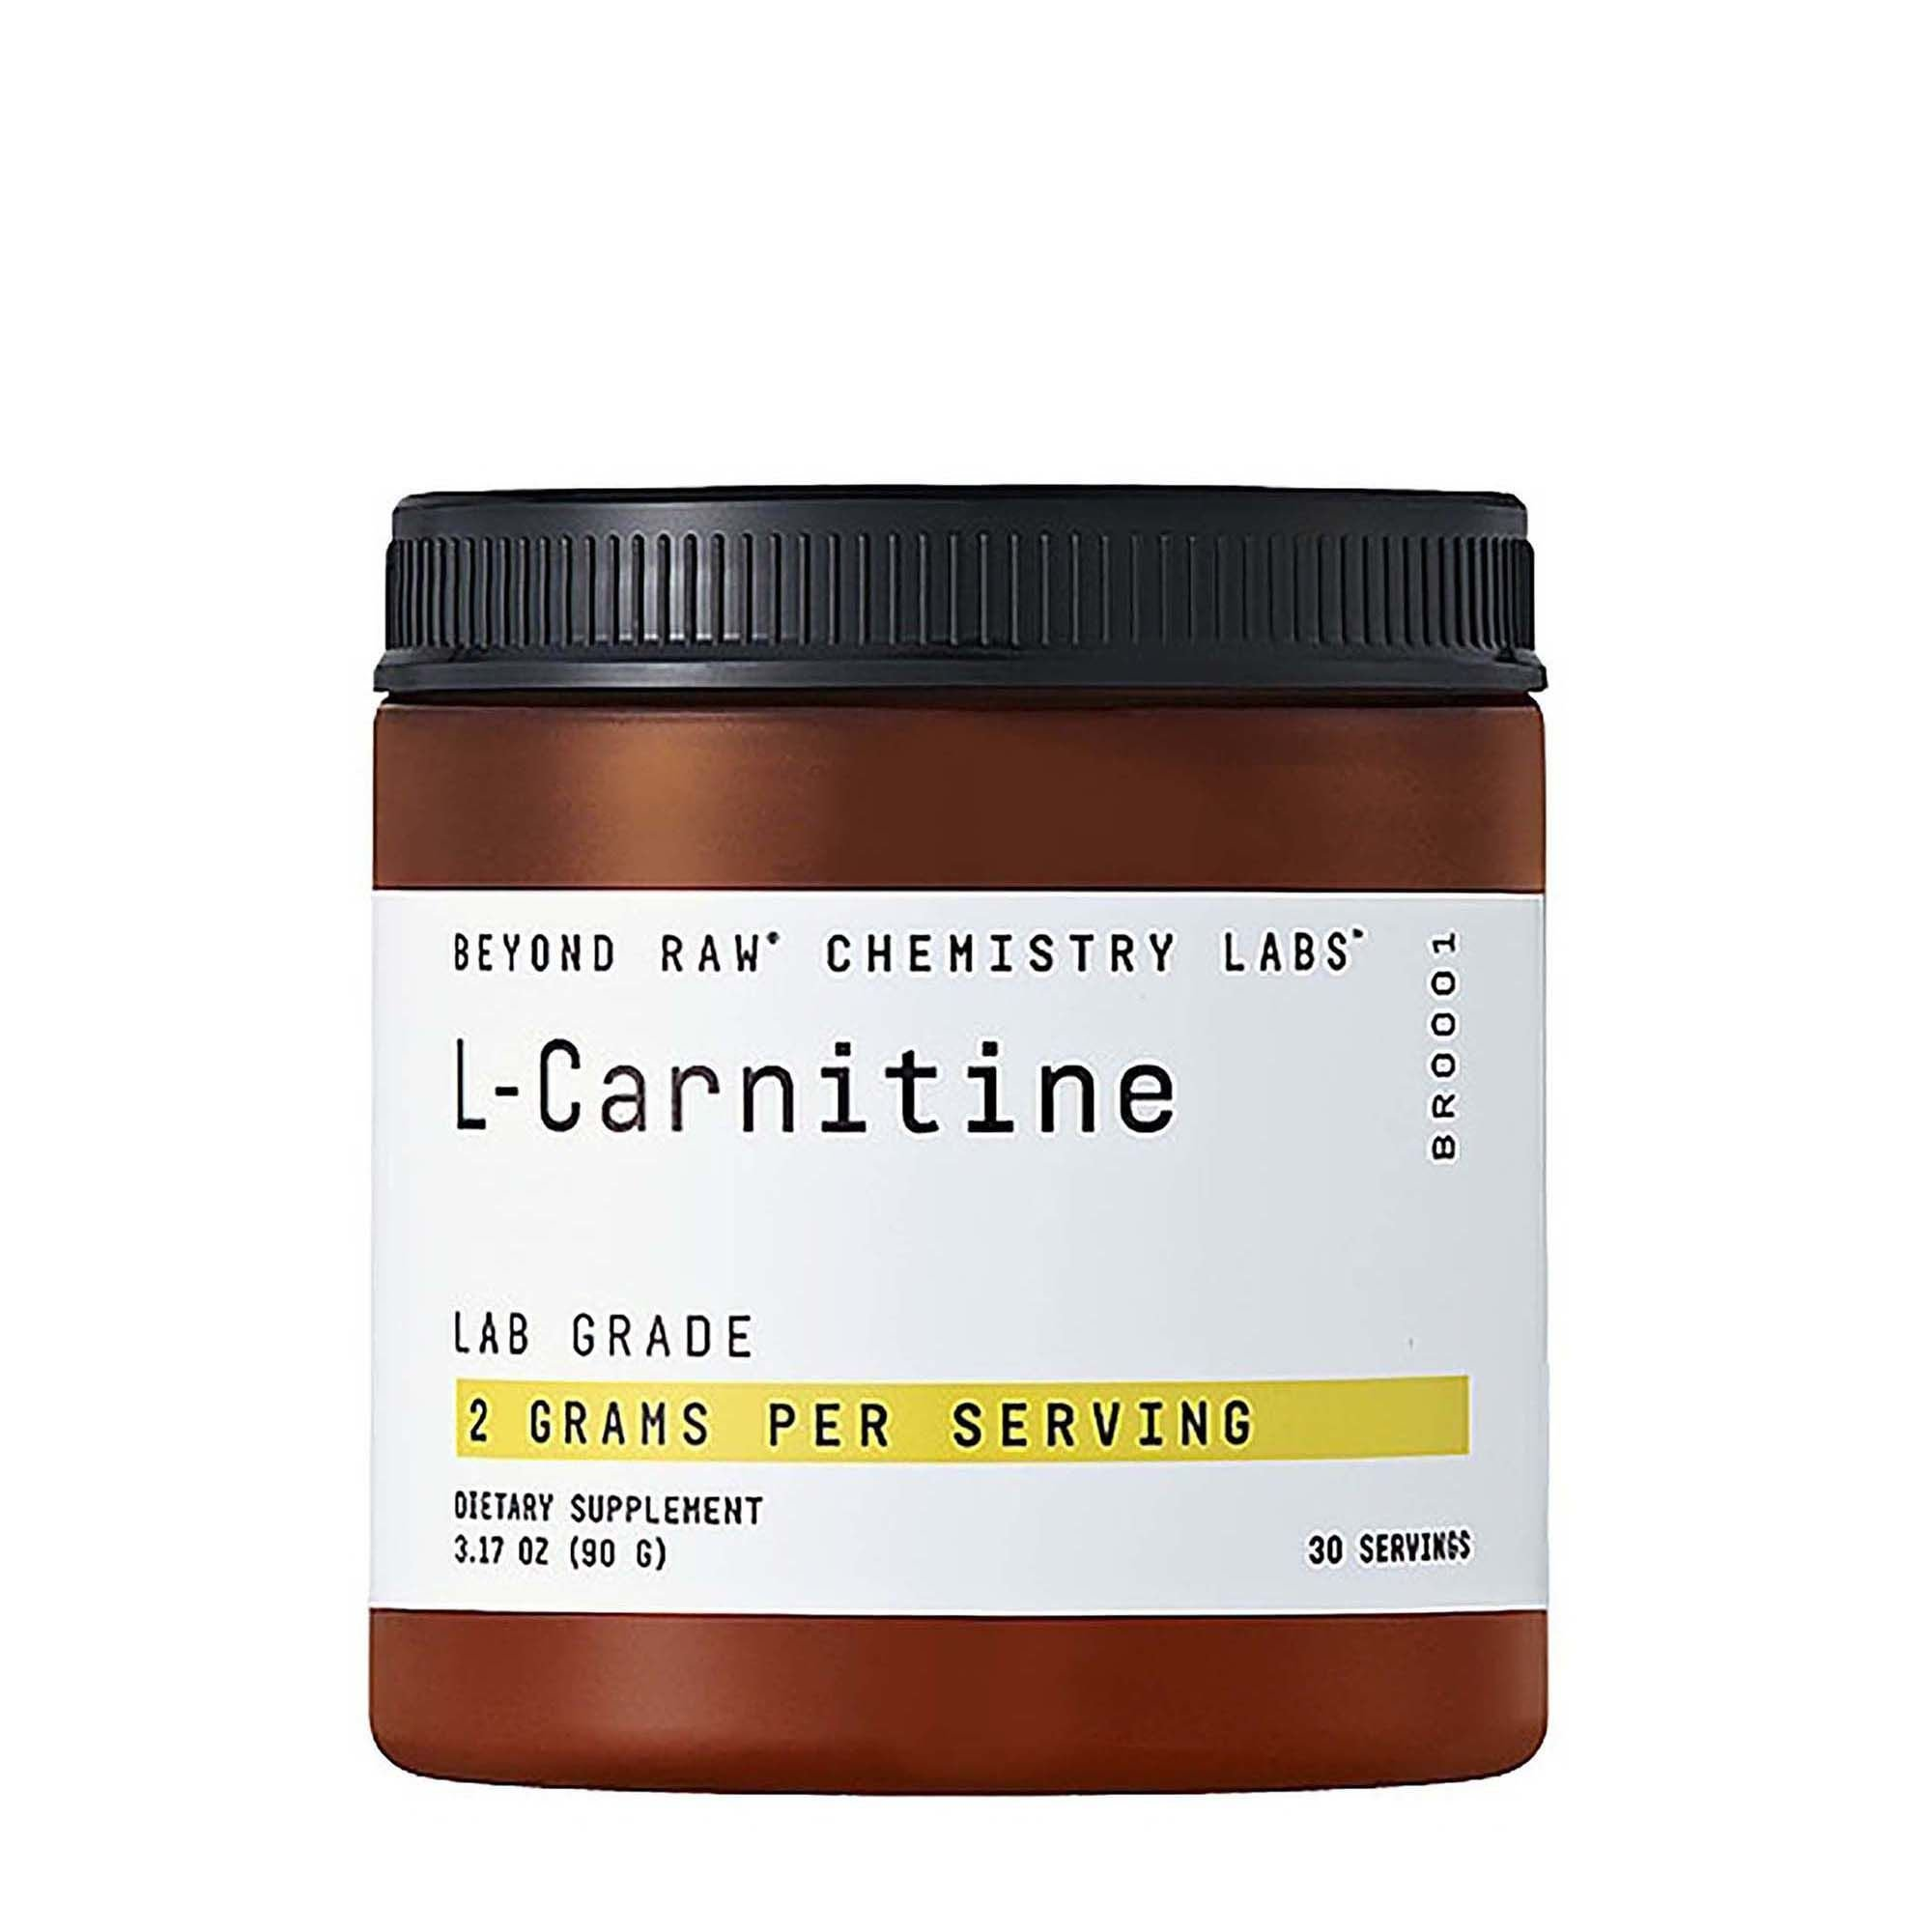 Beyond Raw Chemistry Labs L-Carnitine, 30 Servings